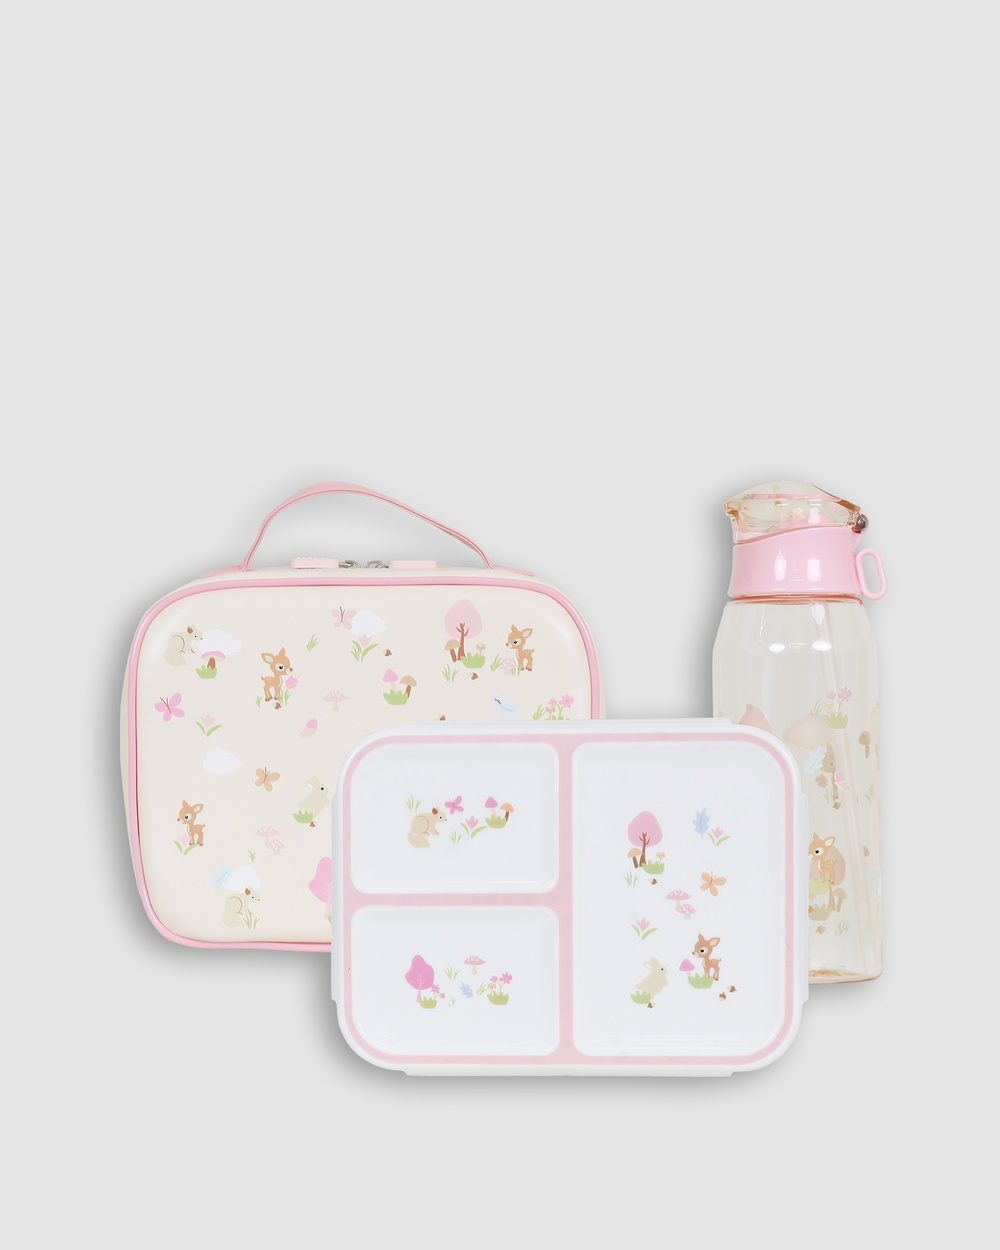 Bobbleart Large Lunch Bag Bento Box and Drink Bottle Forest Friends Novelty Gifts Buff Pink